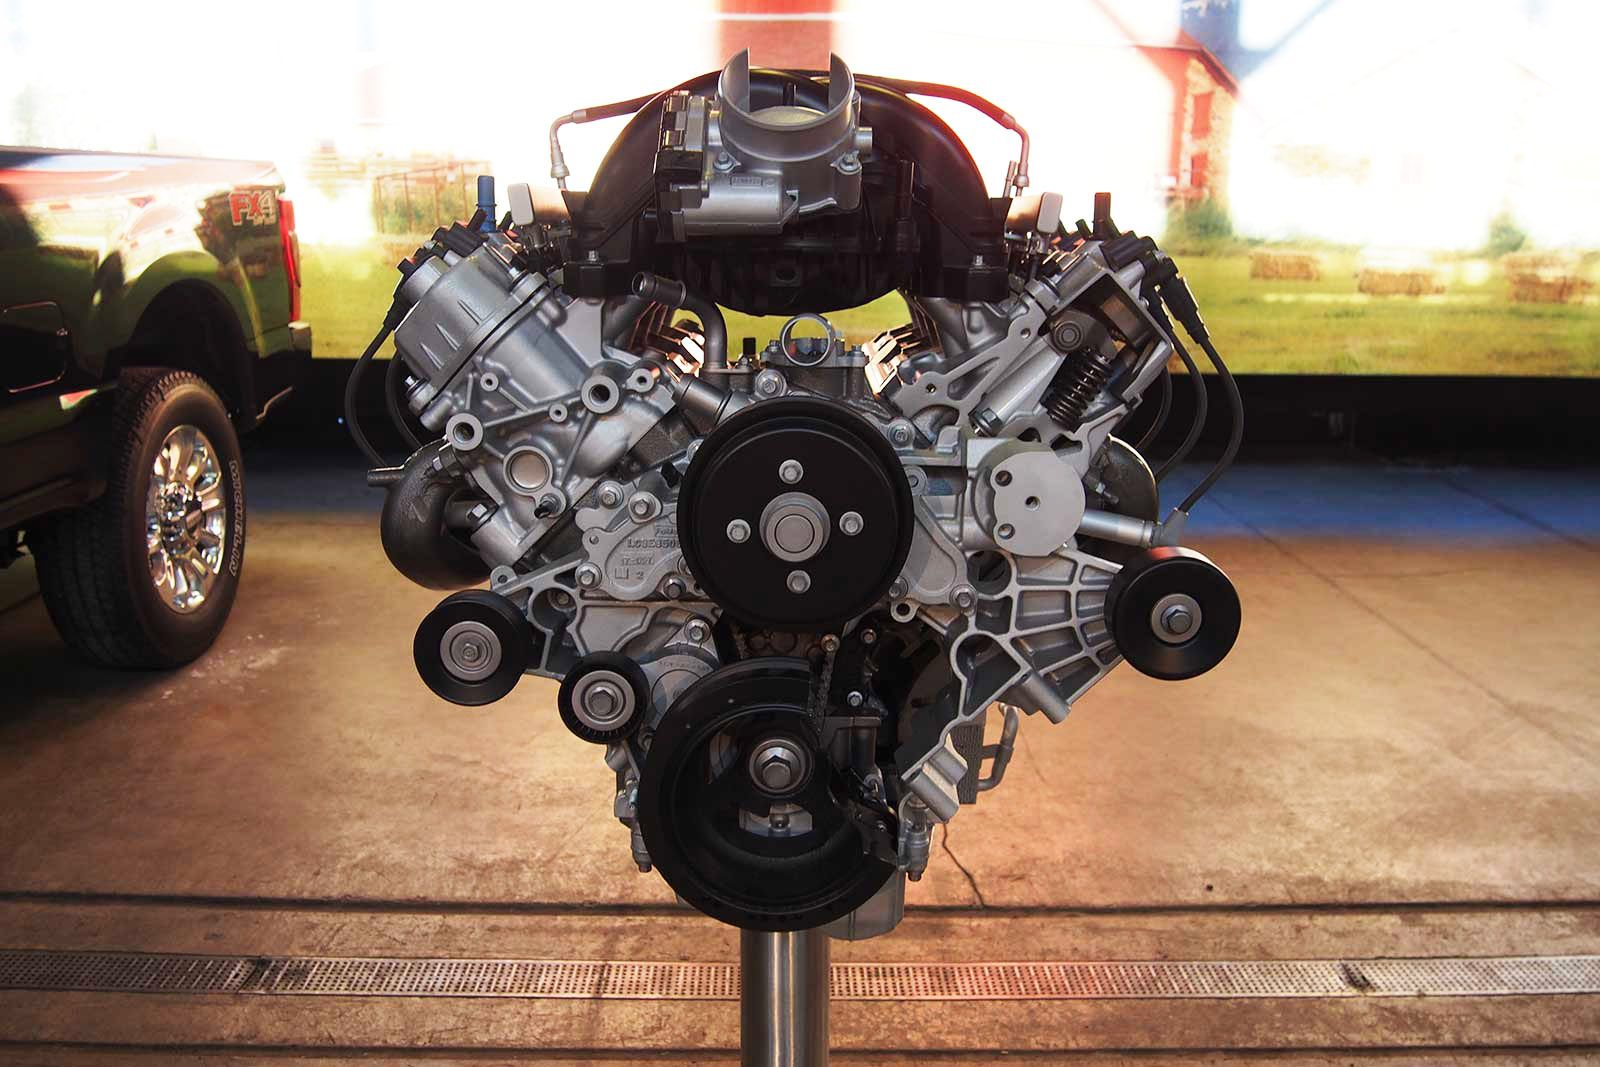 engine-block-showing-V-configuration-that-the-Acura-MDX-and-the-Lexus-RX-use